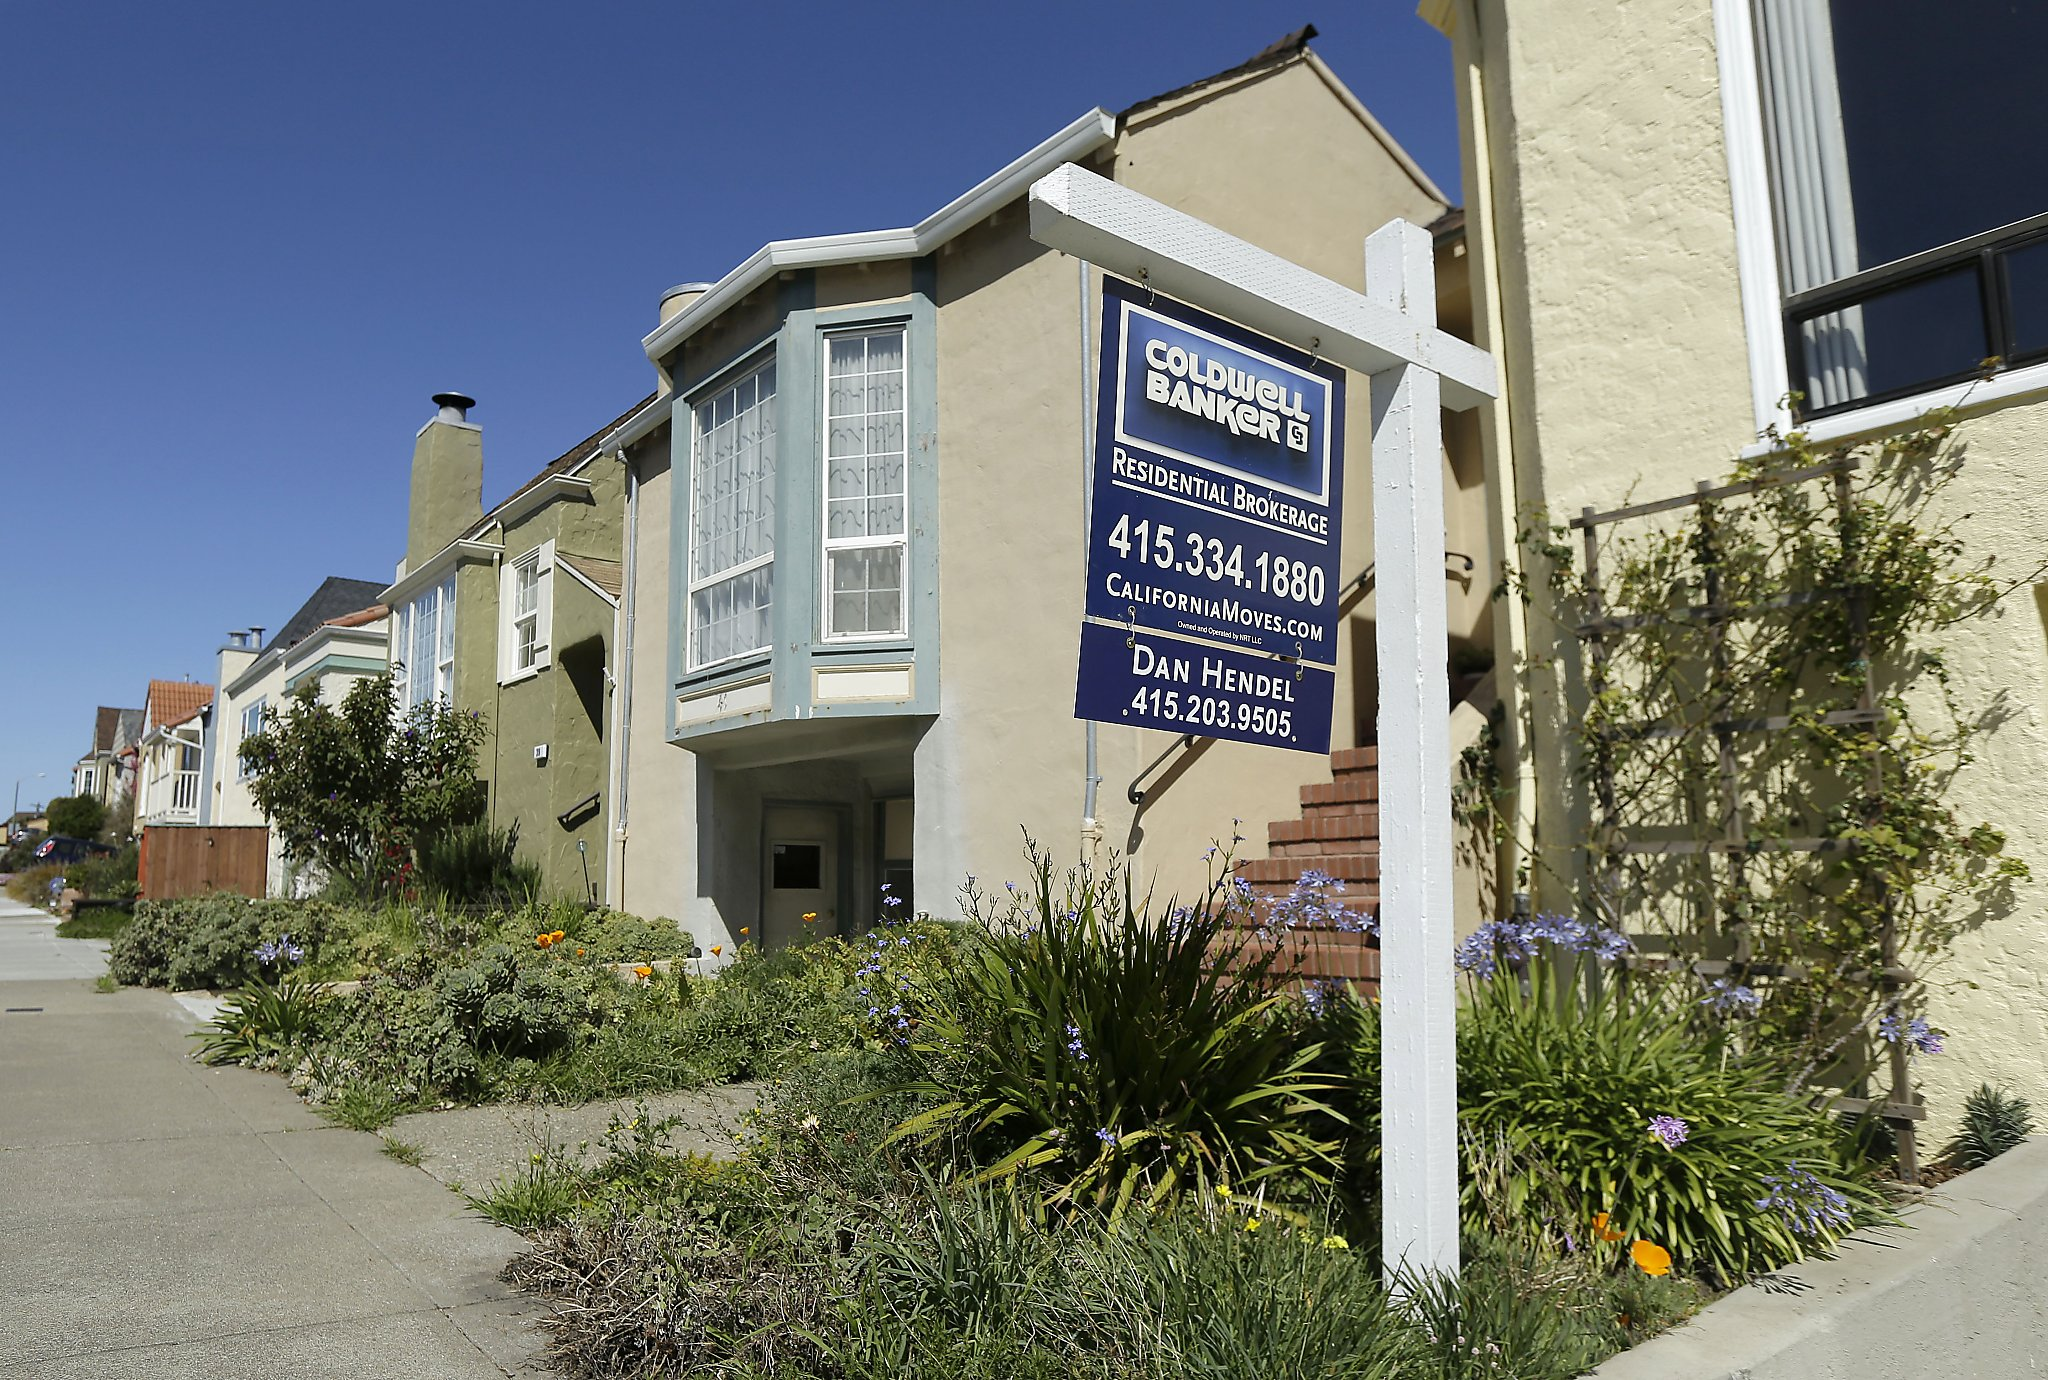 House hunters san francisco bay - A Realtor Sign Is Shown In Front Of A Home For Sale In San Francisco